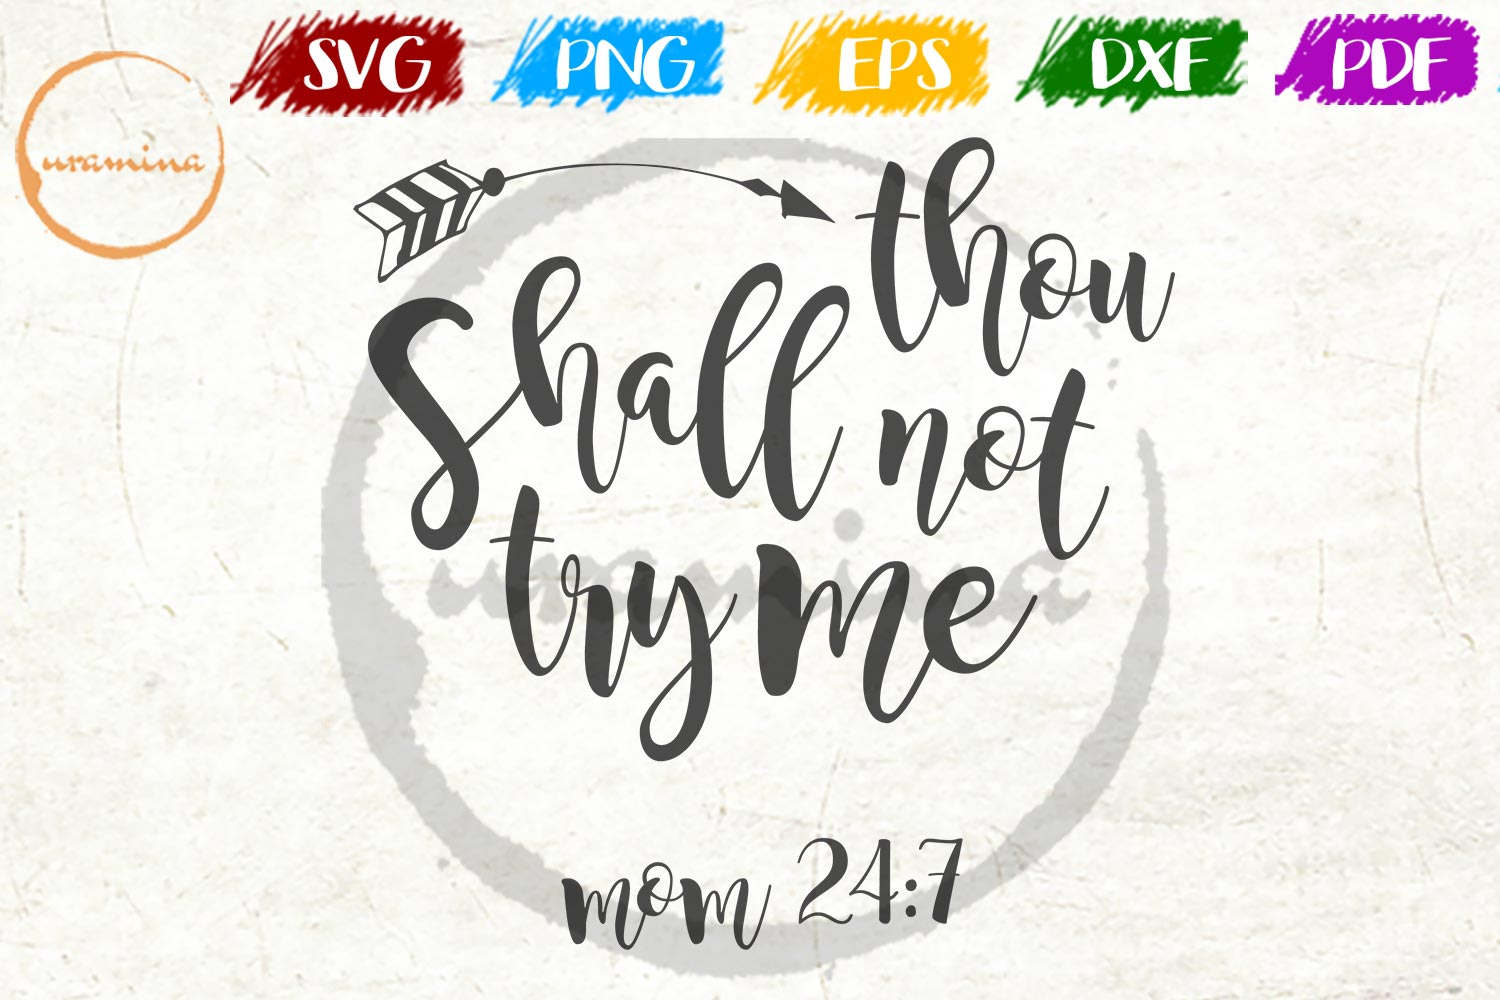 Download Free Thou Shall Not Try Me Graphic By Uramina Creative Fabrica for Cricut Explore, Silhouette and other cutting machines.